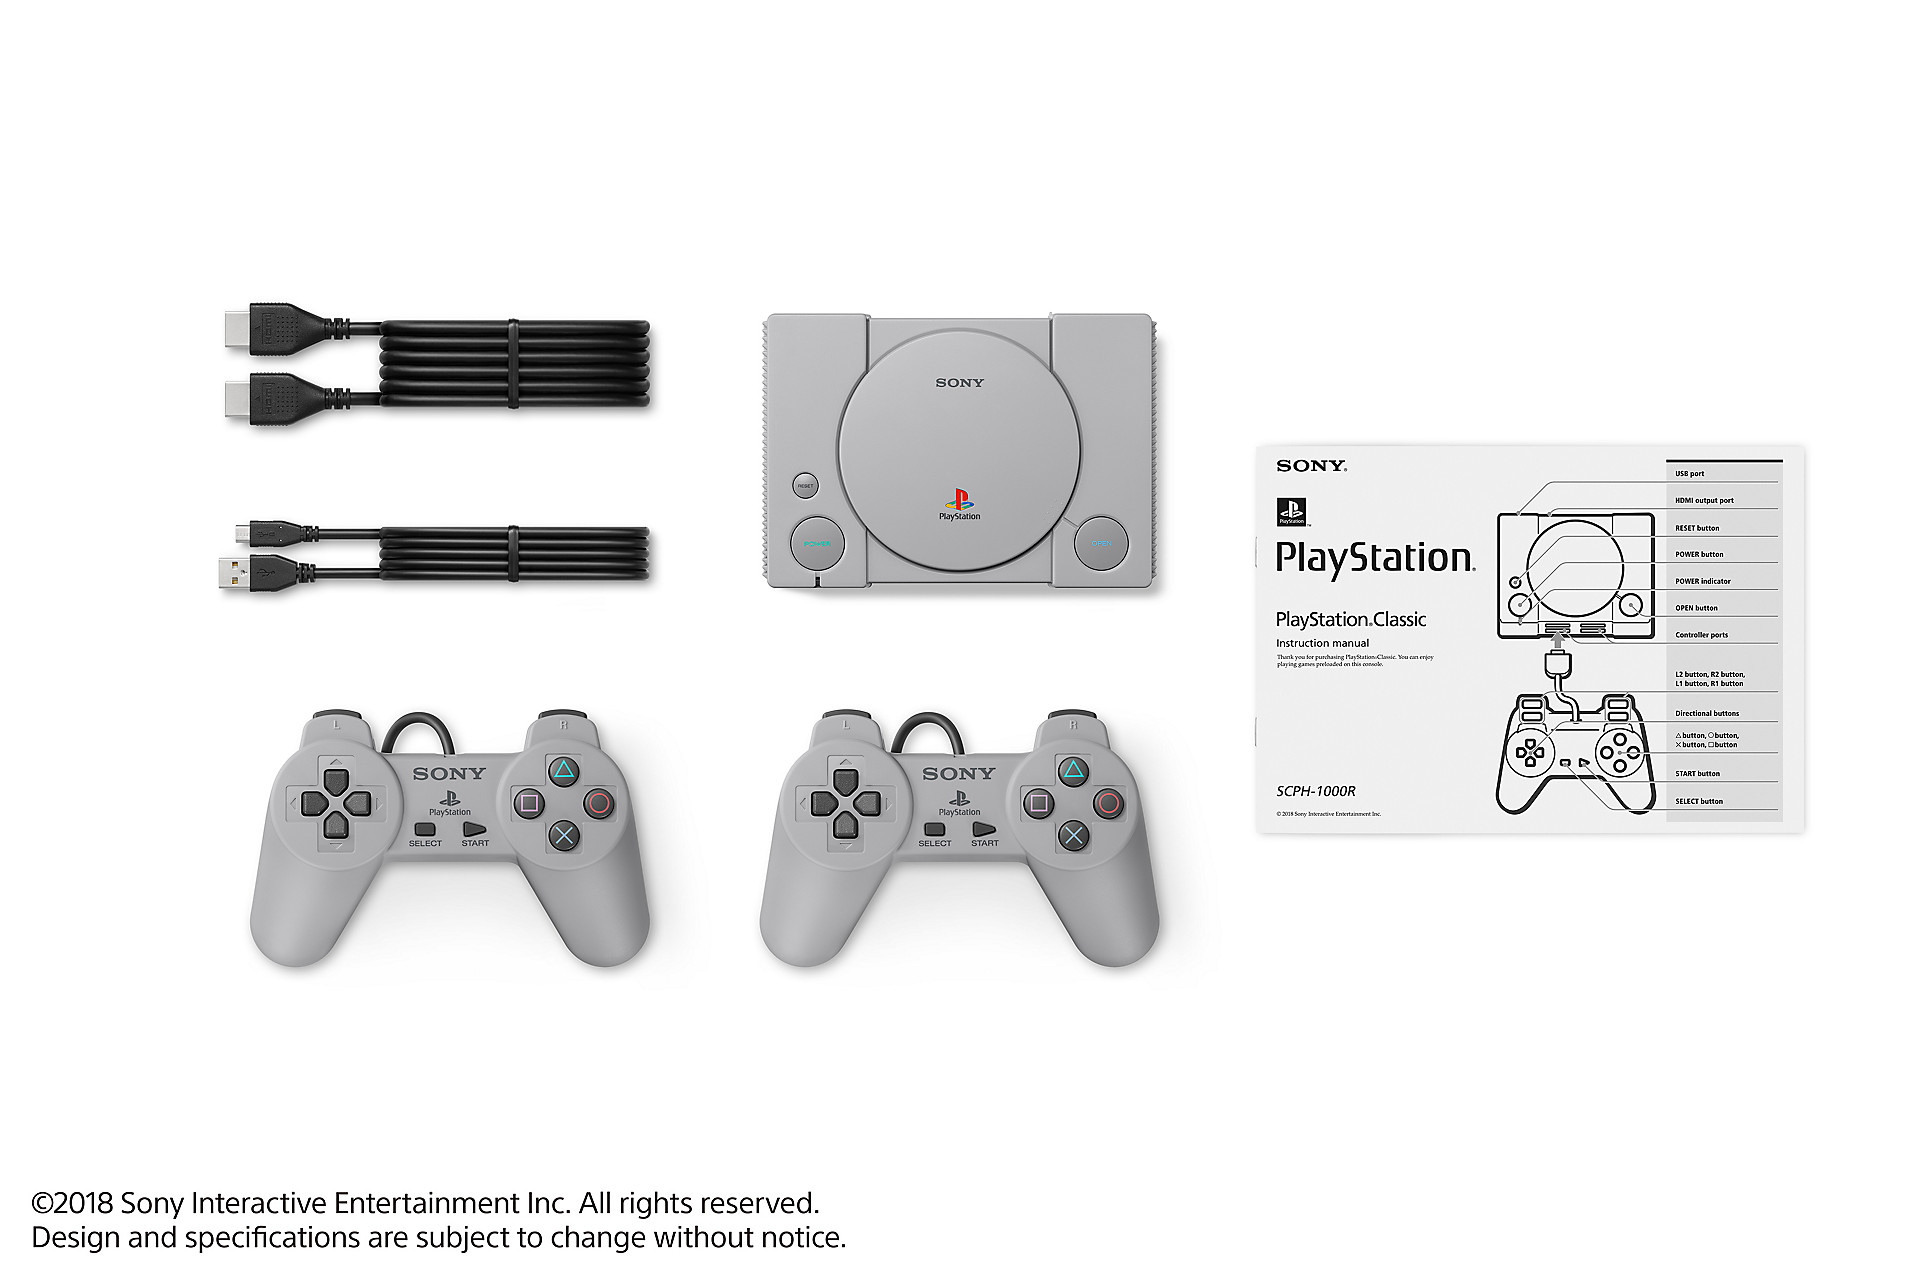 playstation-classic-system